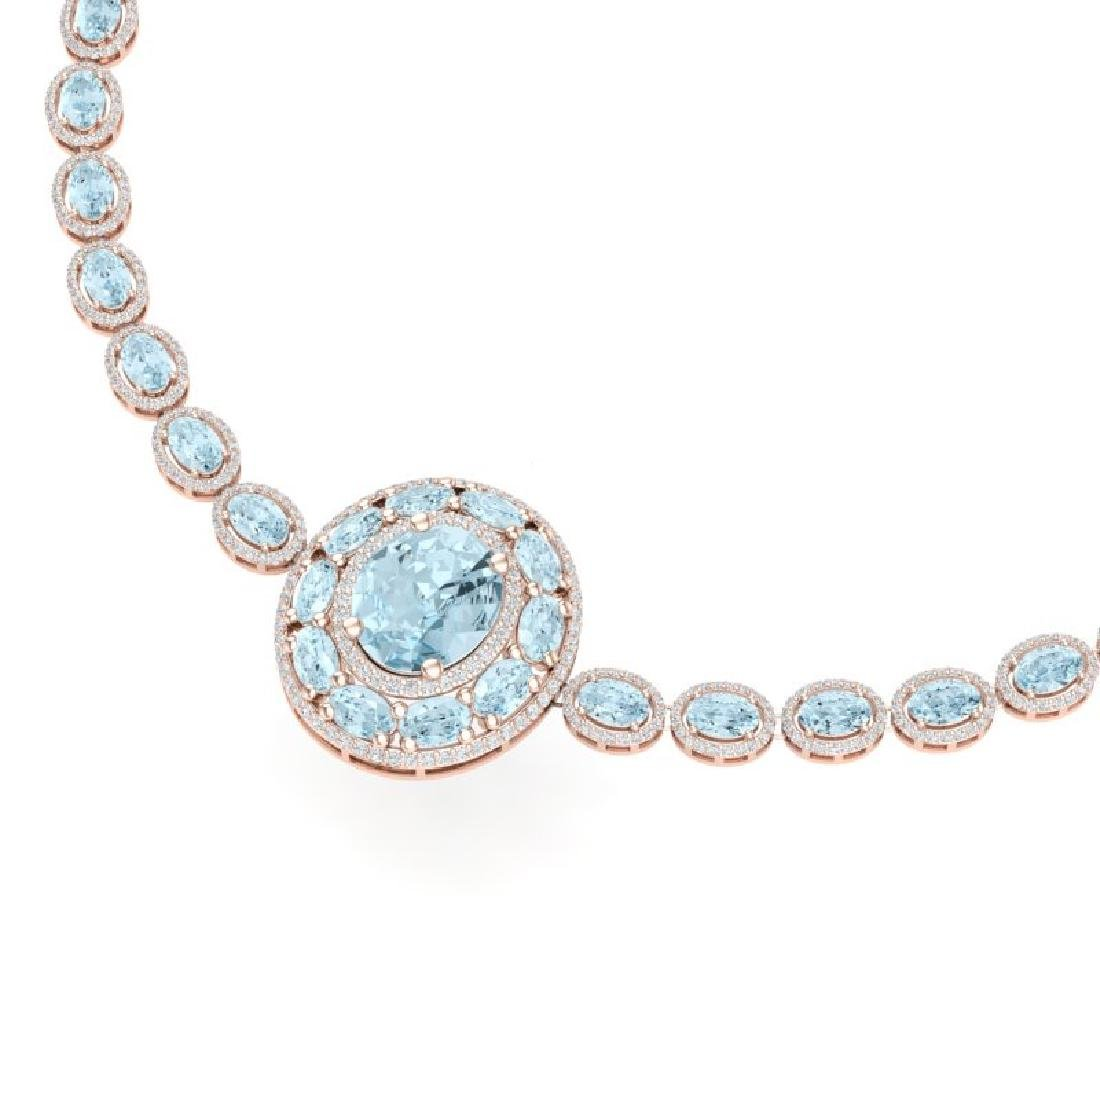 45.12 CTW Royalty Sky Topaz & VS Diamond Necklace 18K